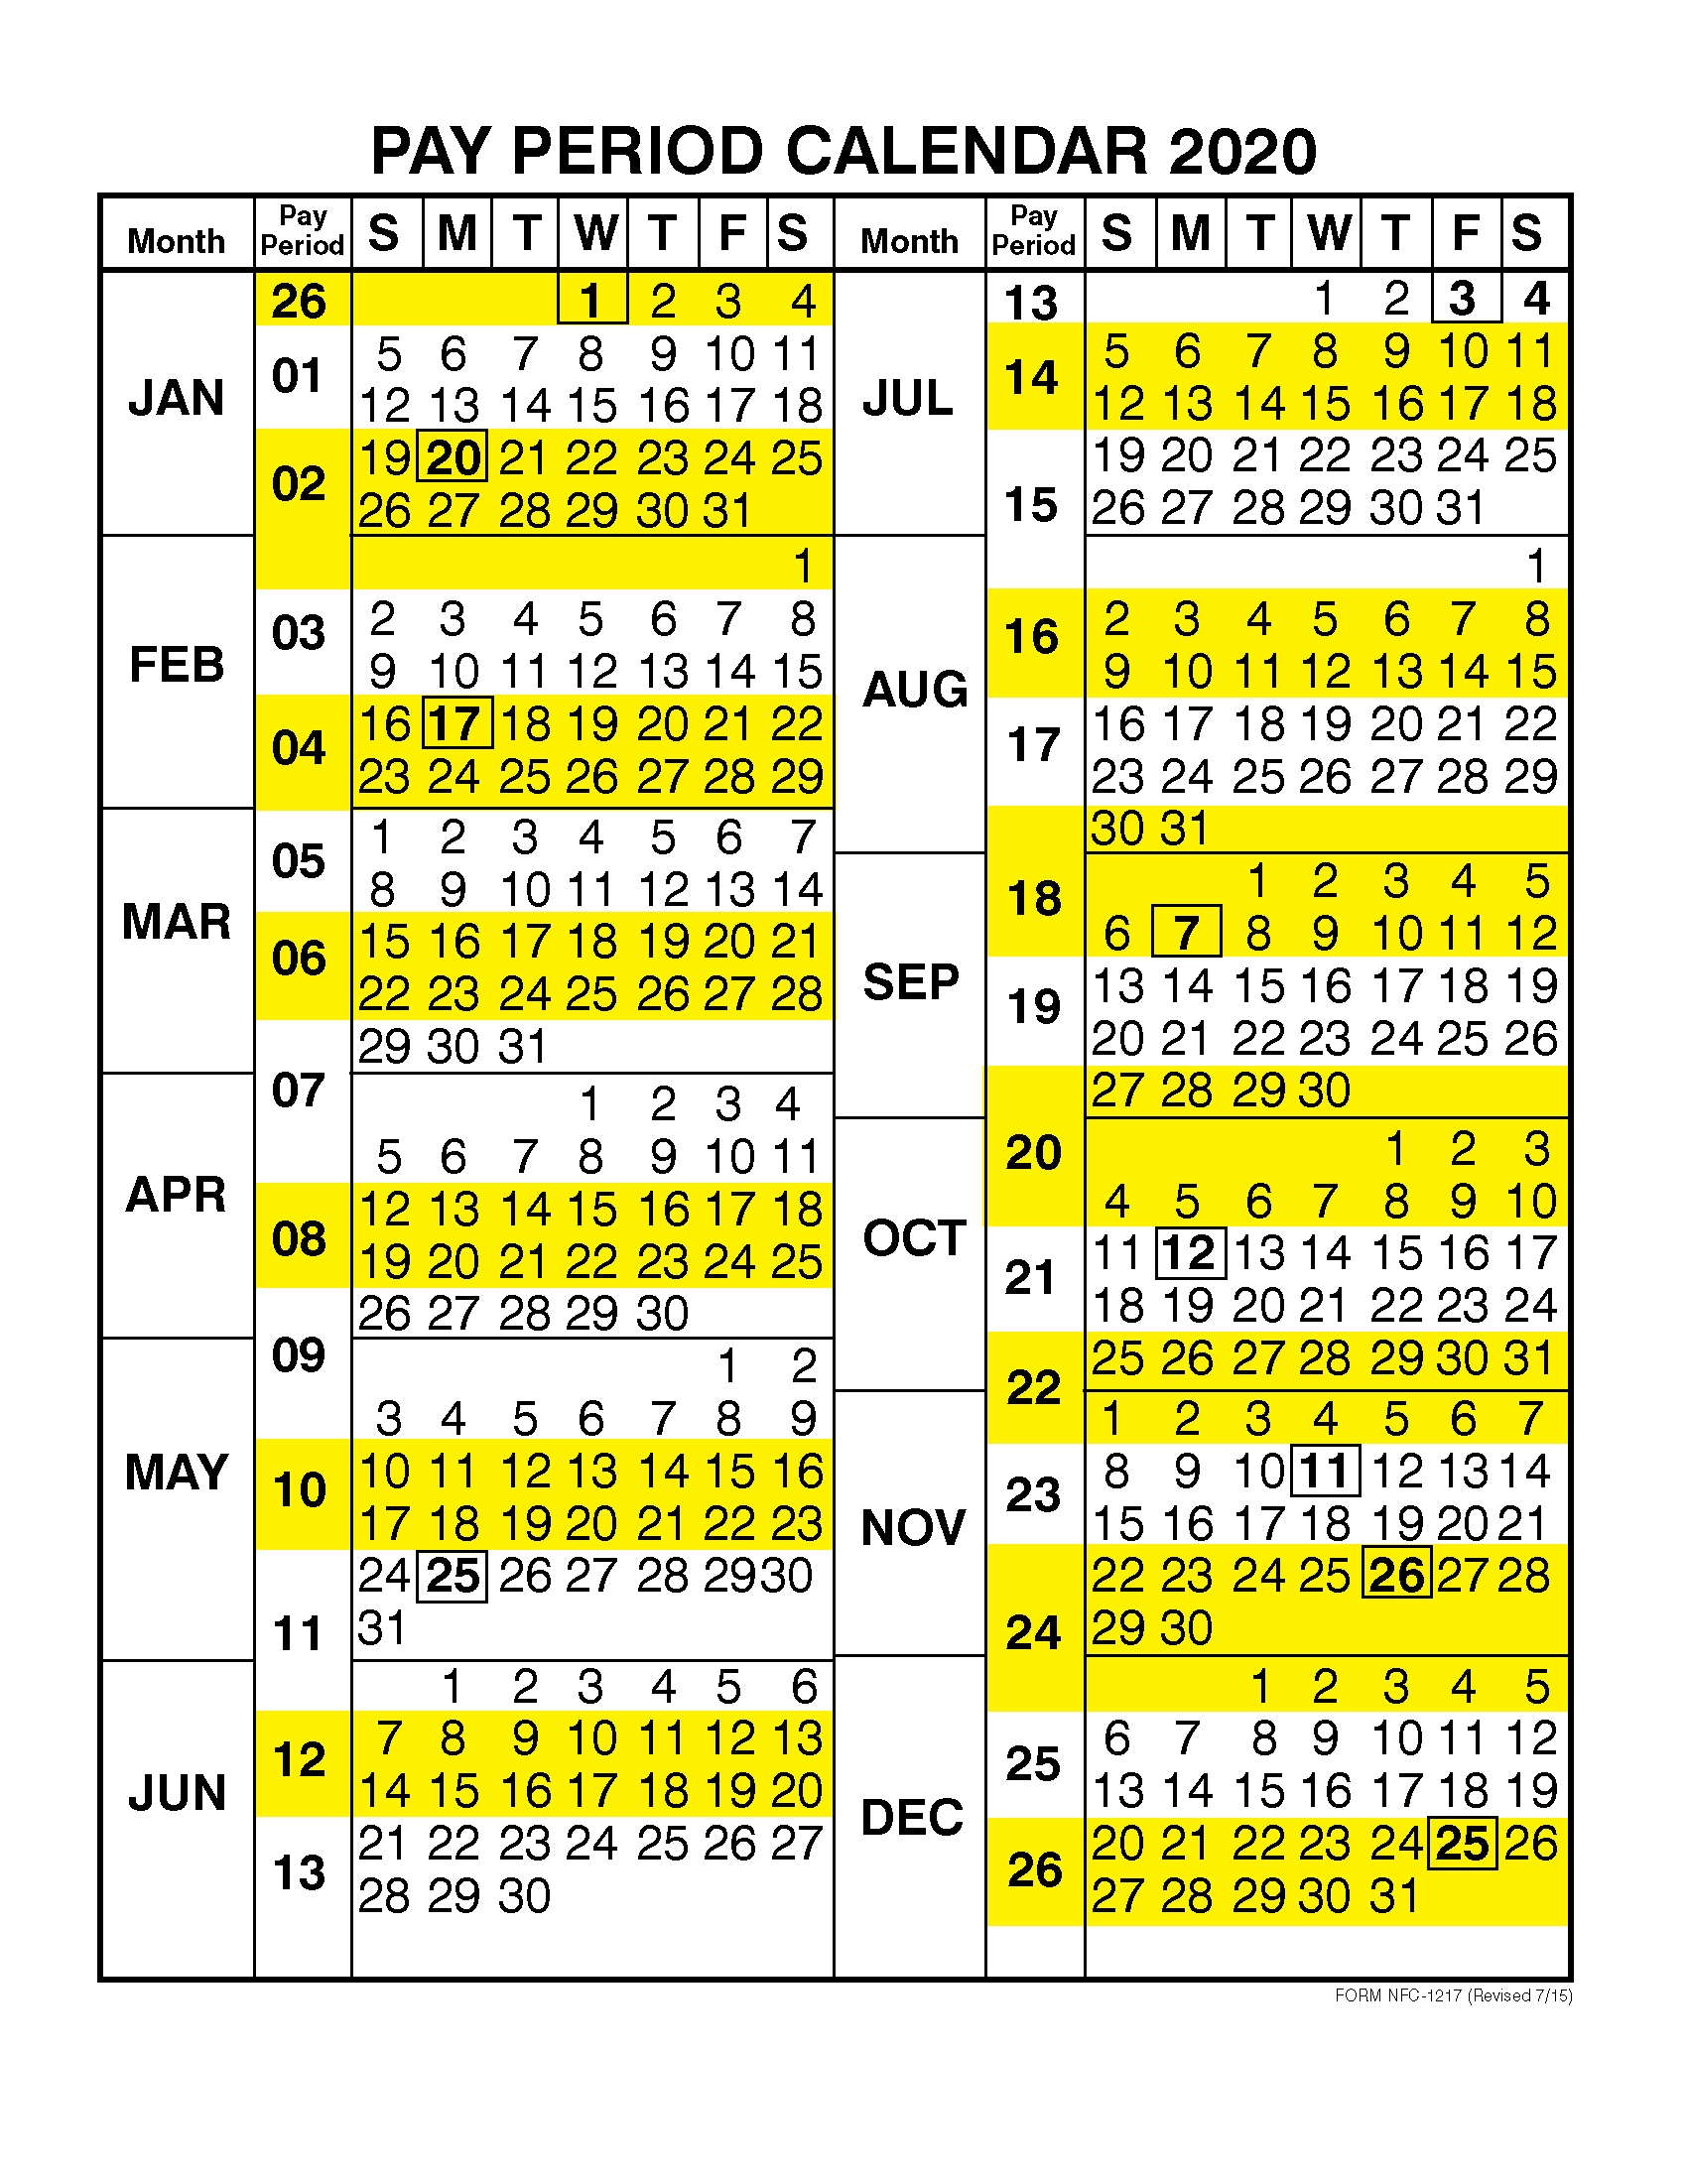 Dfas Payroll Calendar 2020 | 2021 Pay Periods Calendar  Federal Government Pay Calendar With Holidays